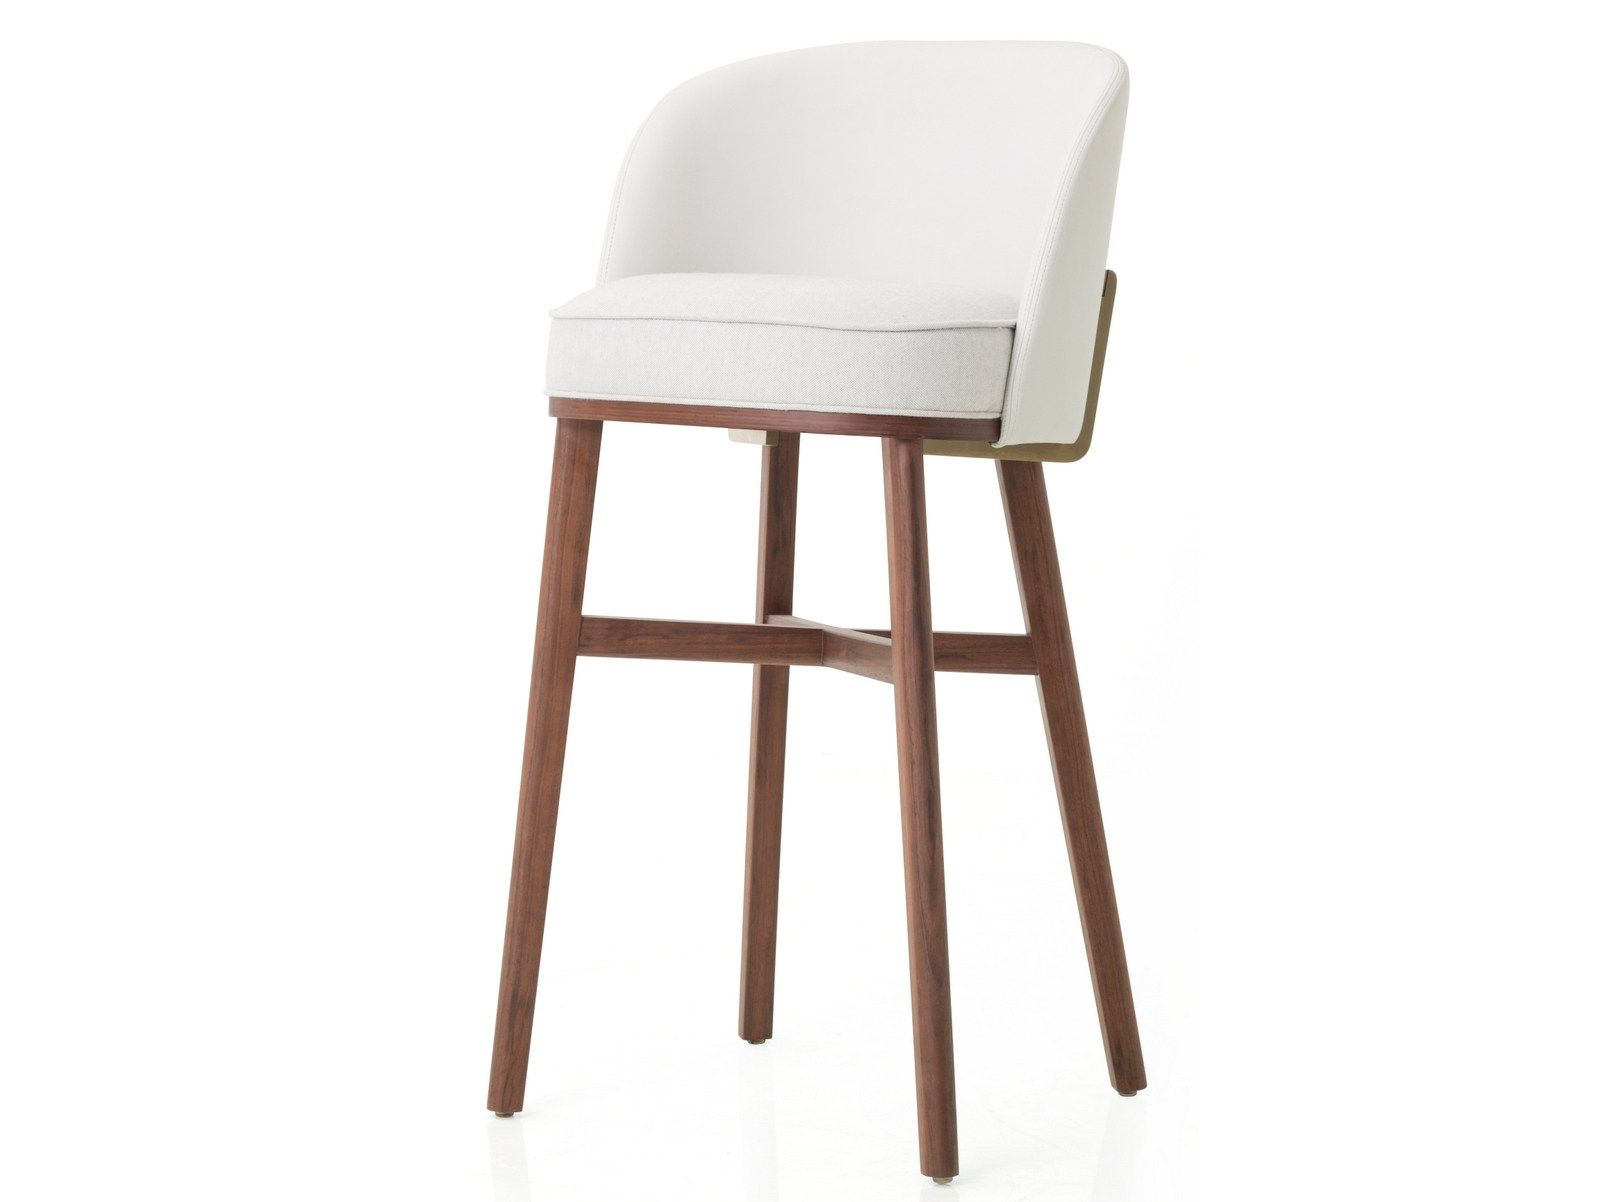 Designer High Chair High Chair Bund High Chair Bund Collection By Stellar Works Design